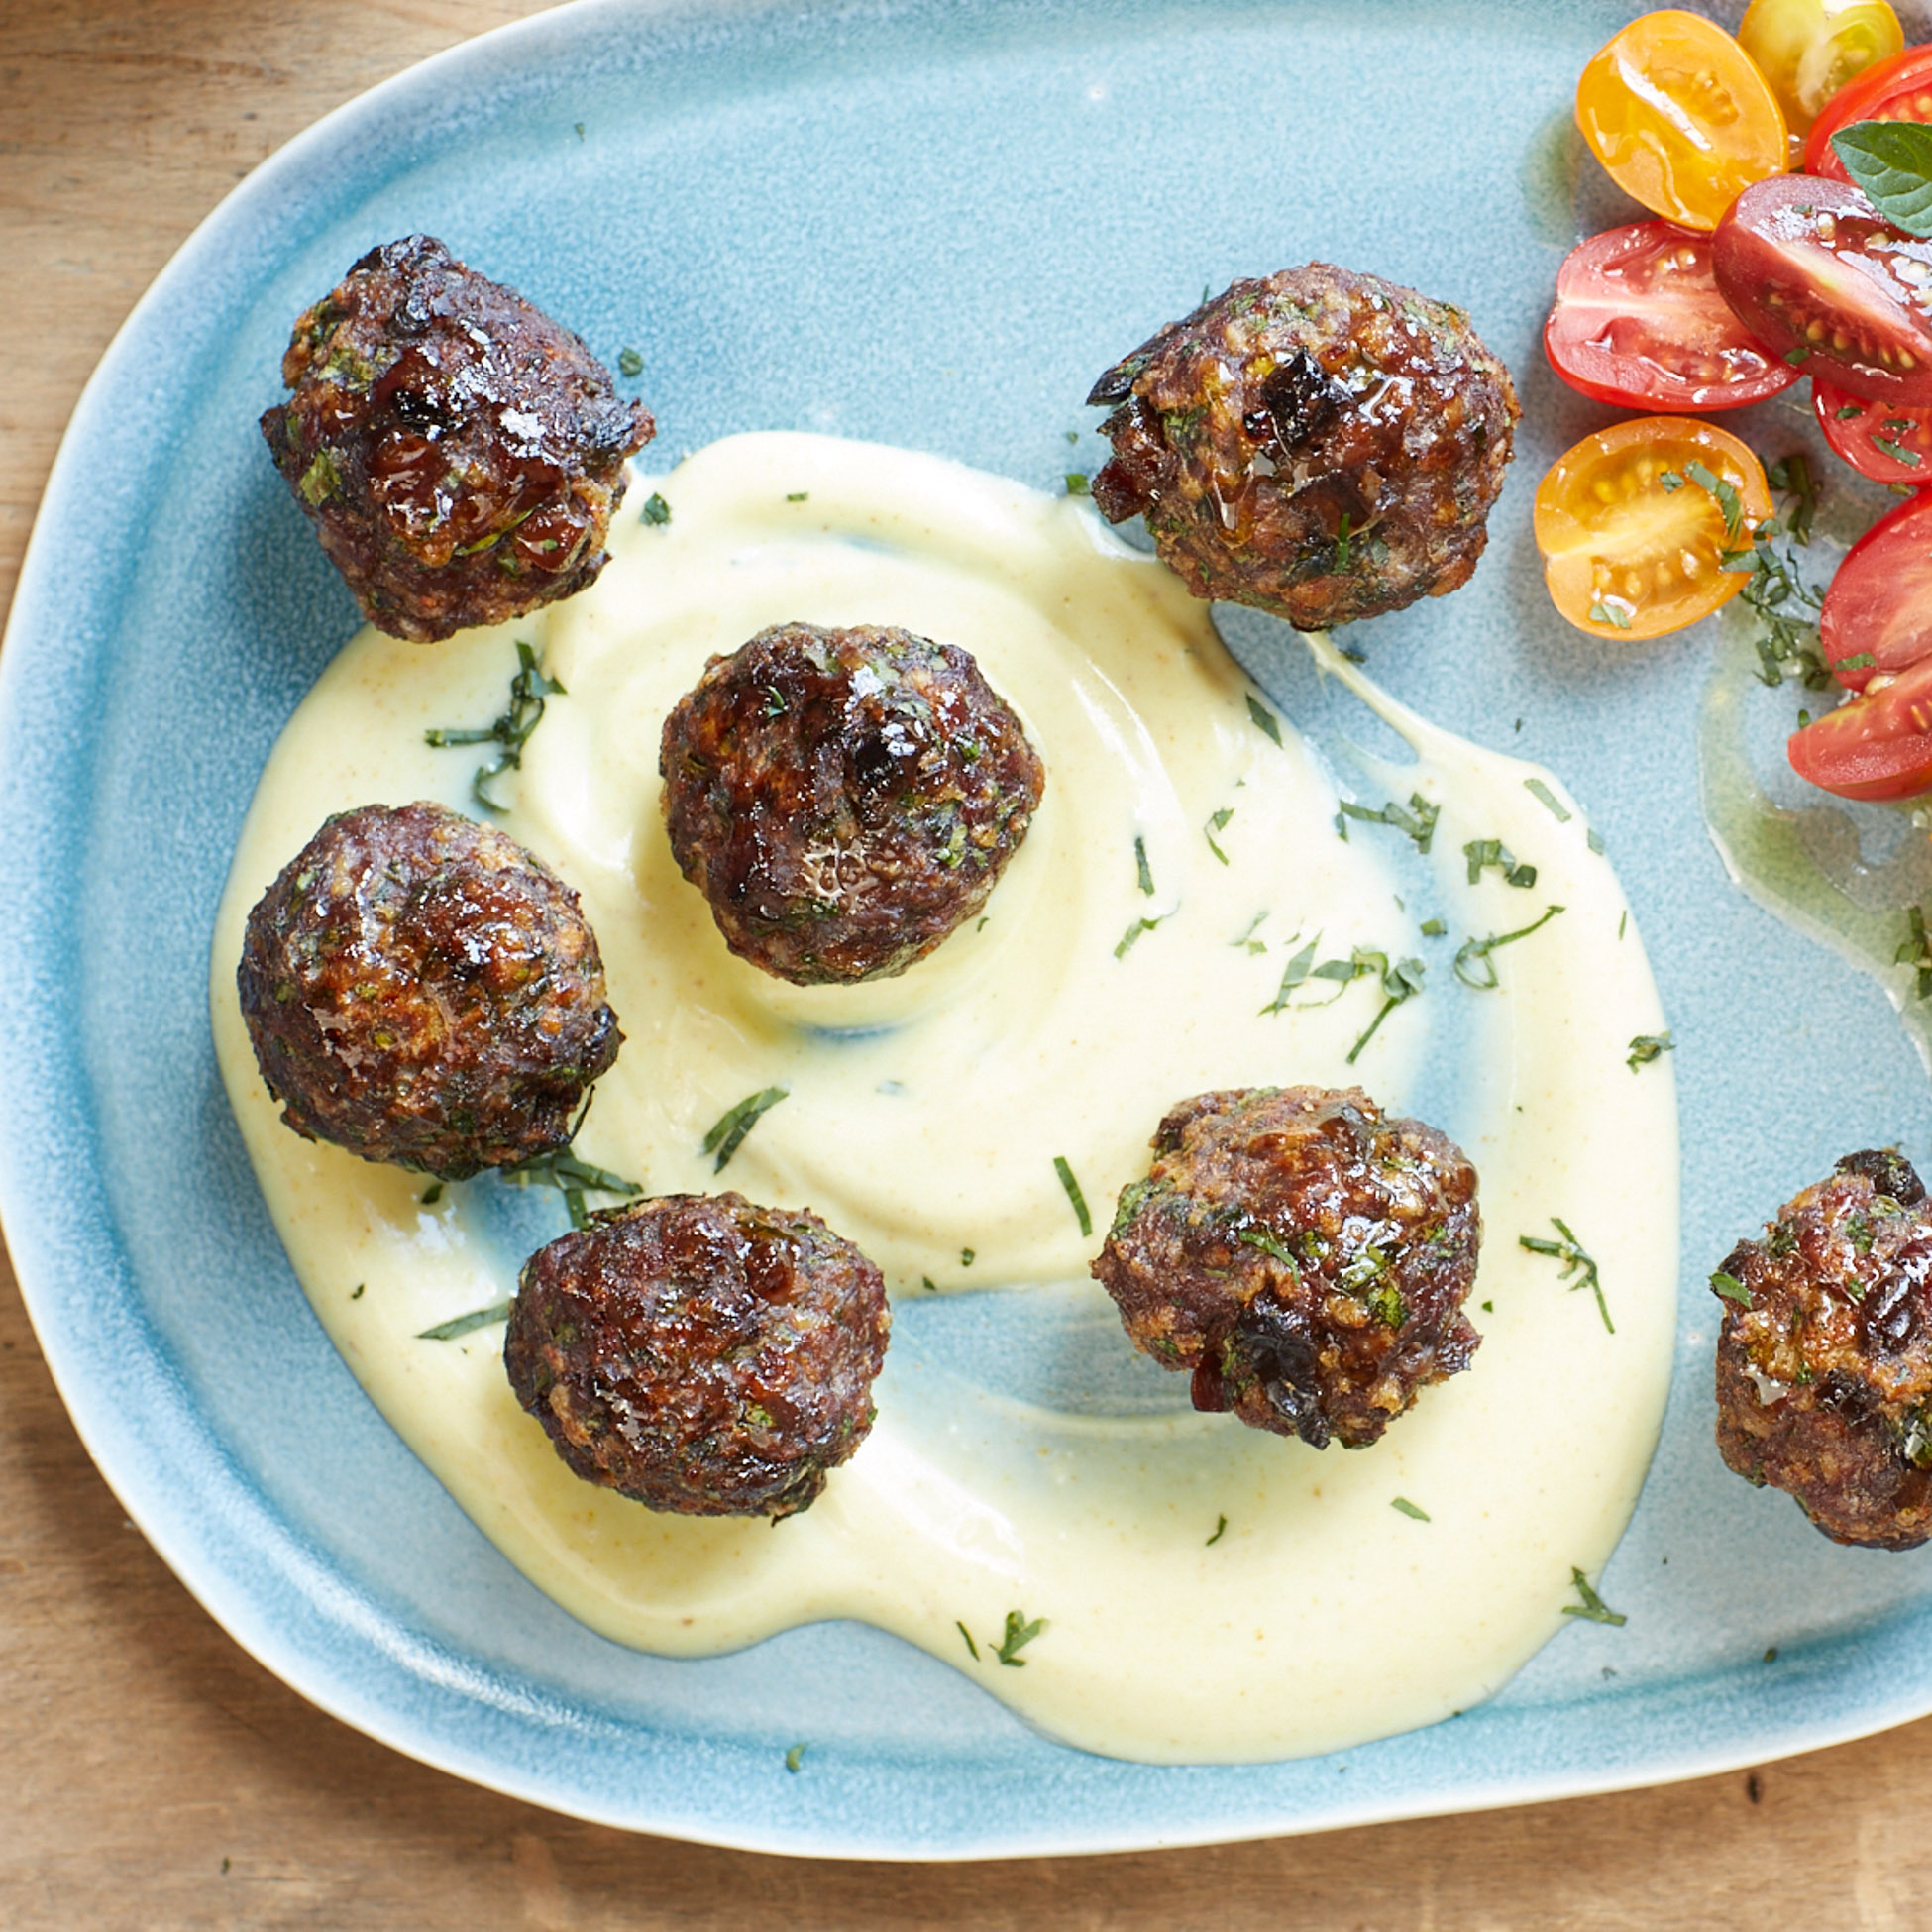 <p>The sweetness of prunes balances out the savory flavors of cumin and garlic in these bite-sized meatballs that work well in wraps and sandwiches.</p>